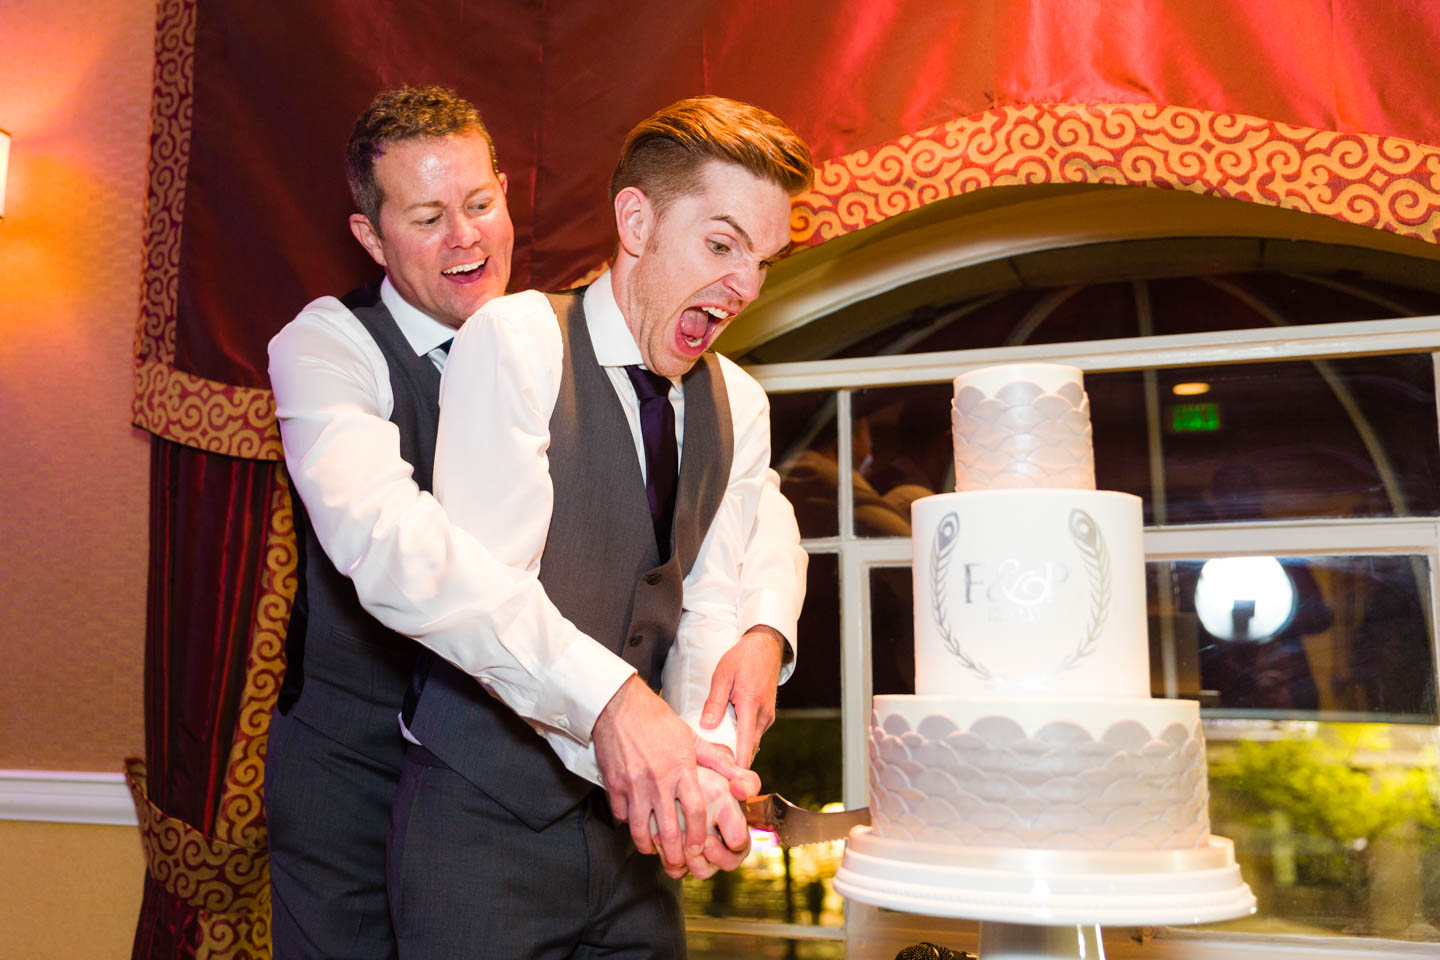 Grooms cut wedding cake